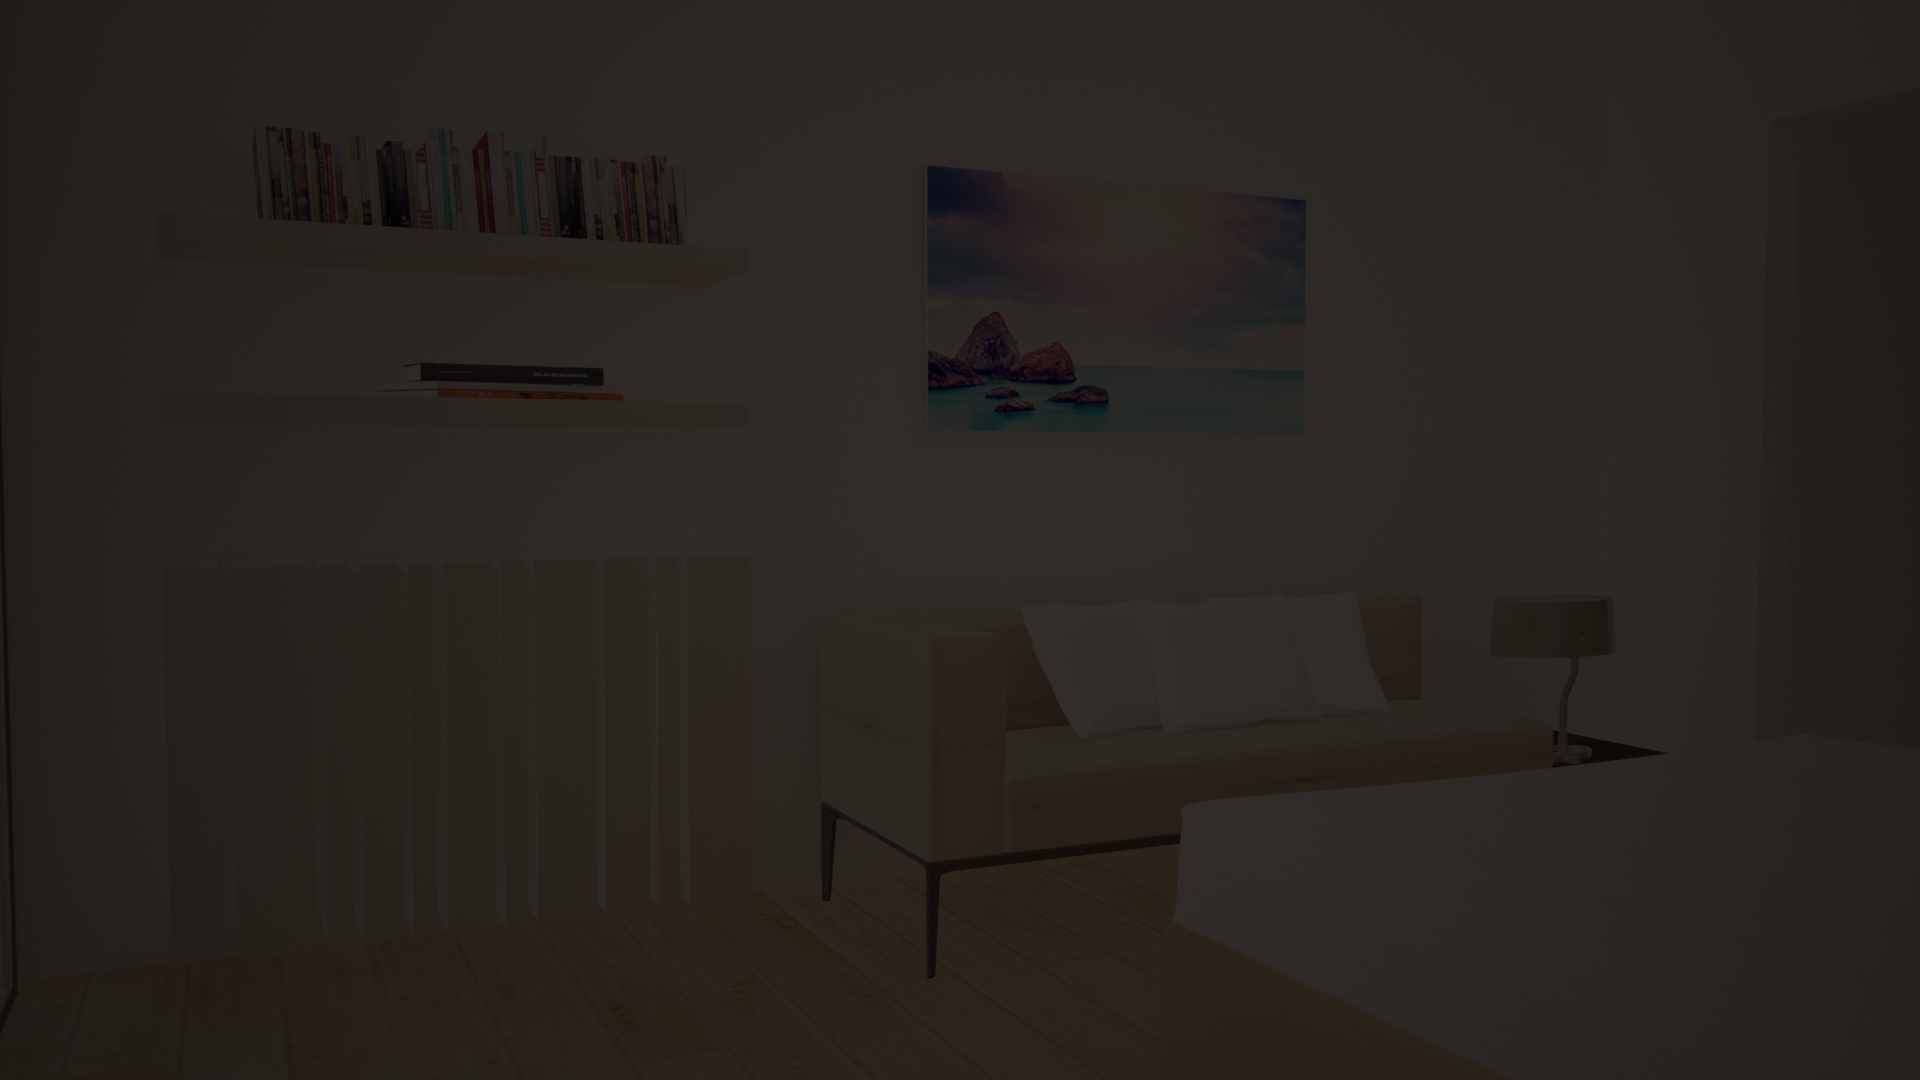 Vray Sun and lights are not showing in Render - Autodesk